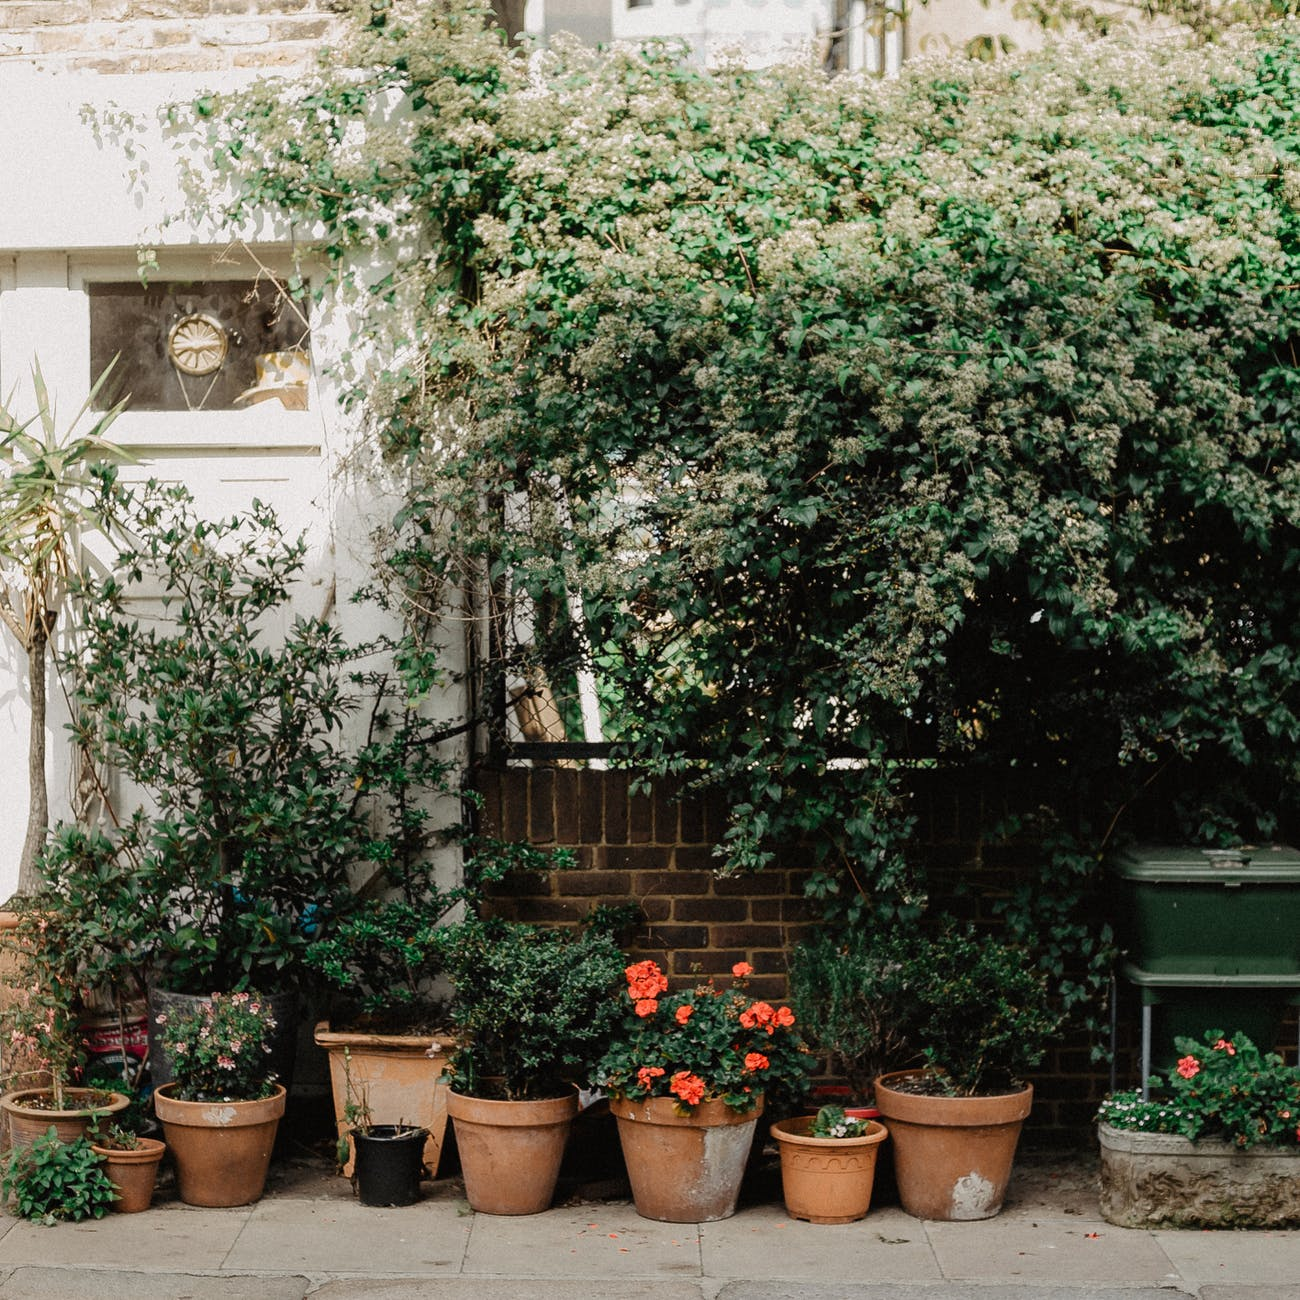 green plants on brown clay pots